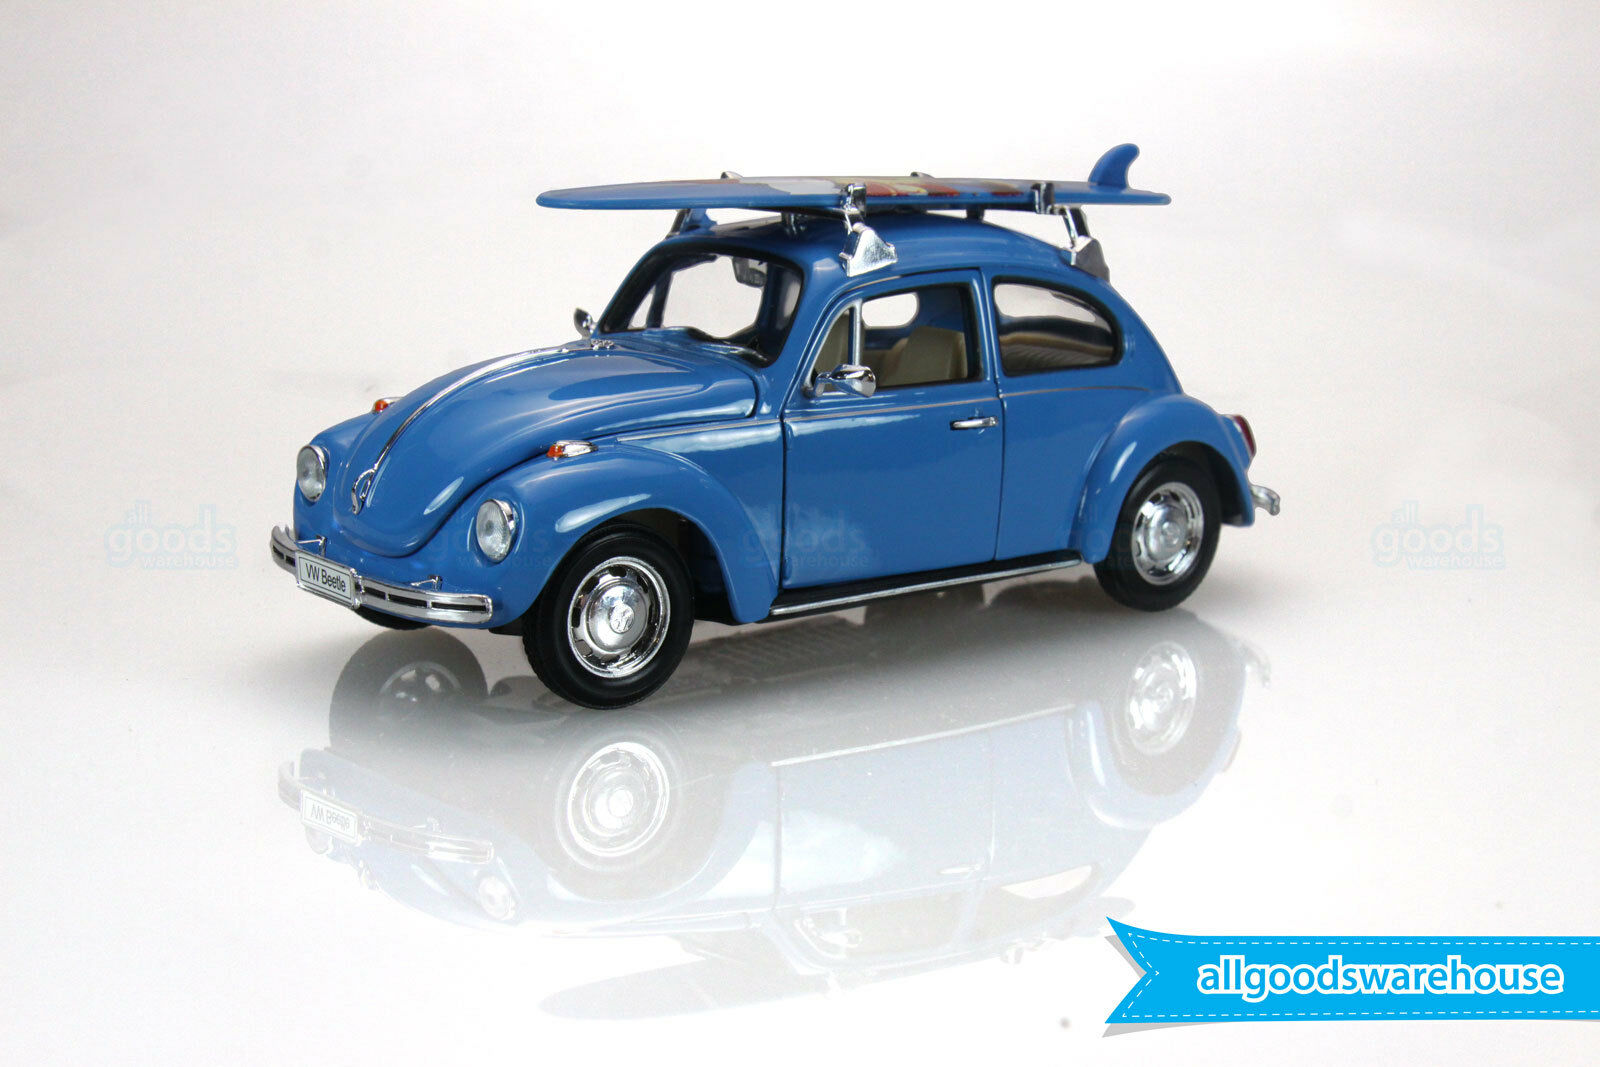 Volkswagen Beetle VW Classic Bug 1 24 scale die-cast model hooby car + surfboard